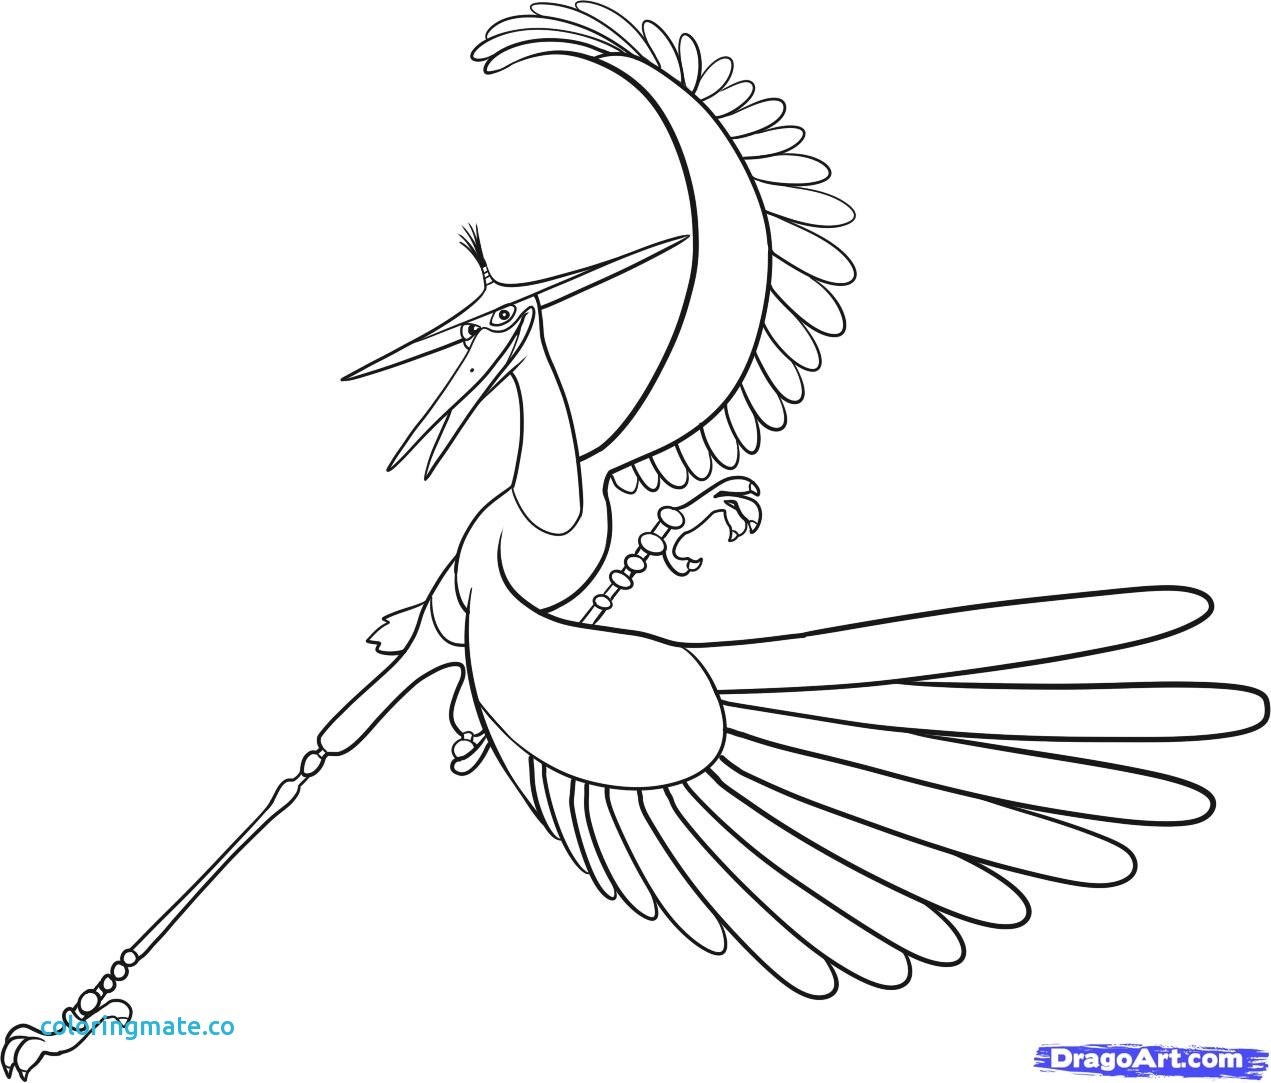 1271x1083 Kung Fu Panda Coloring Pages Lovely How To Draw Crane Master Crane